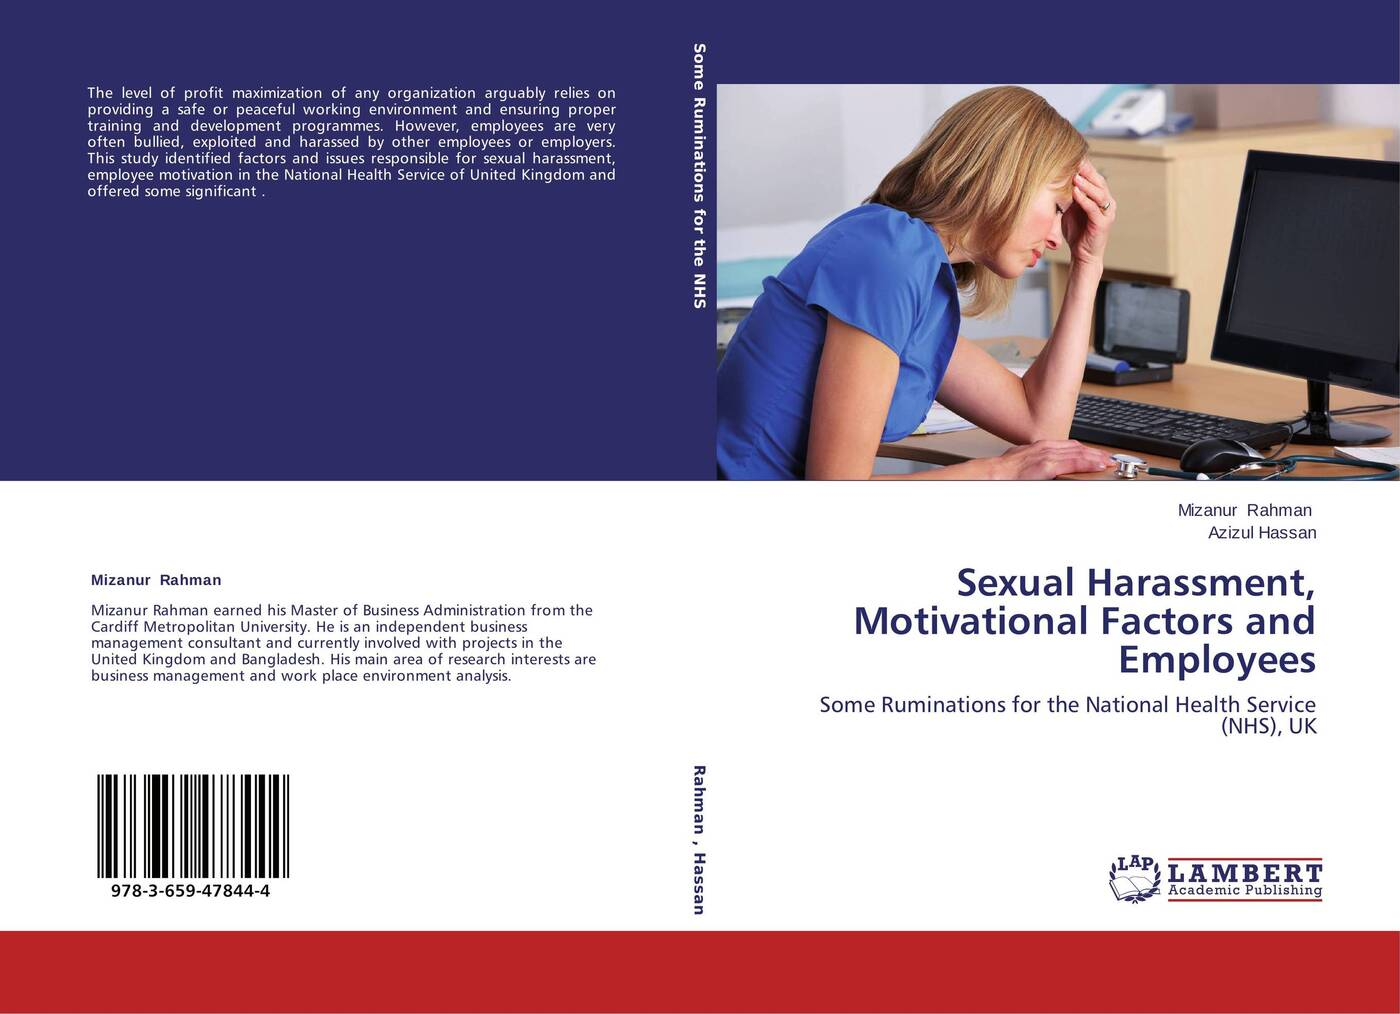 Mizanur Rahman and Azizul Hassan Sexual Harassment, Motivational Factors and Employees blessing adegoke effect of training on employees productivity in public service organisation